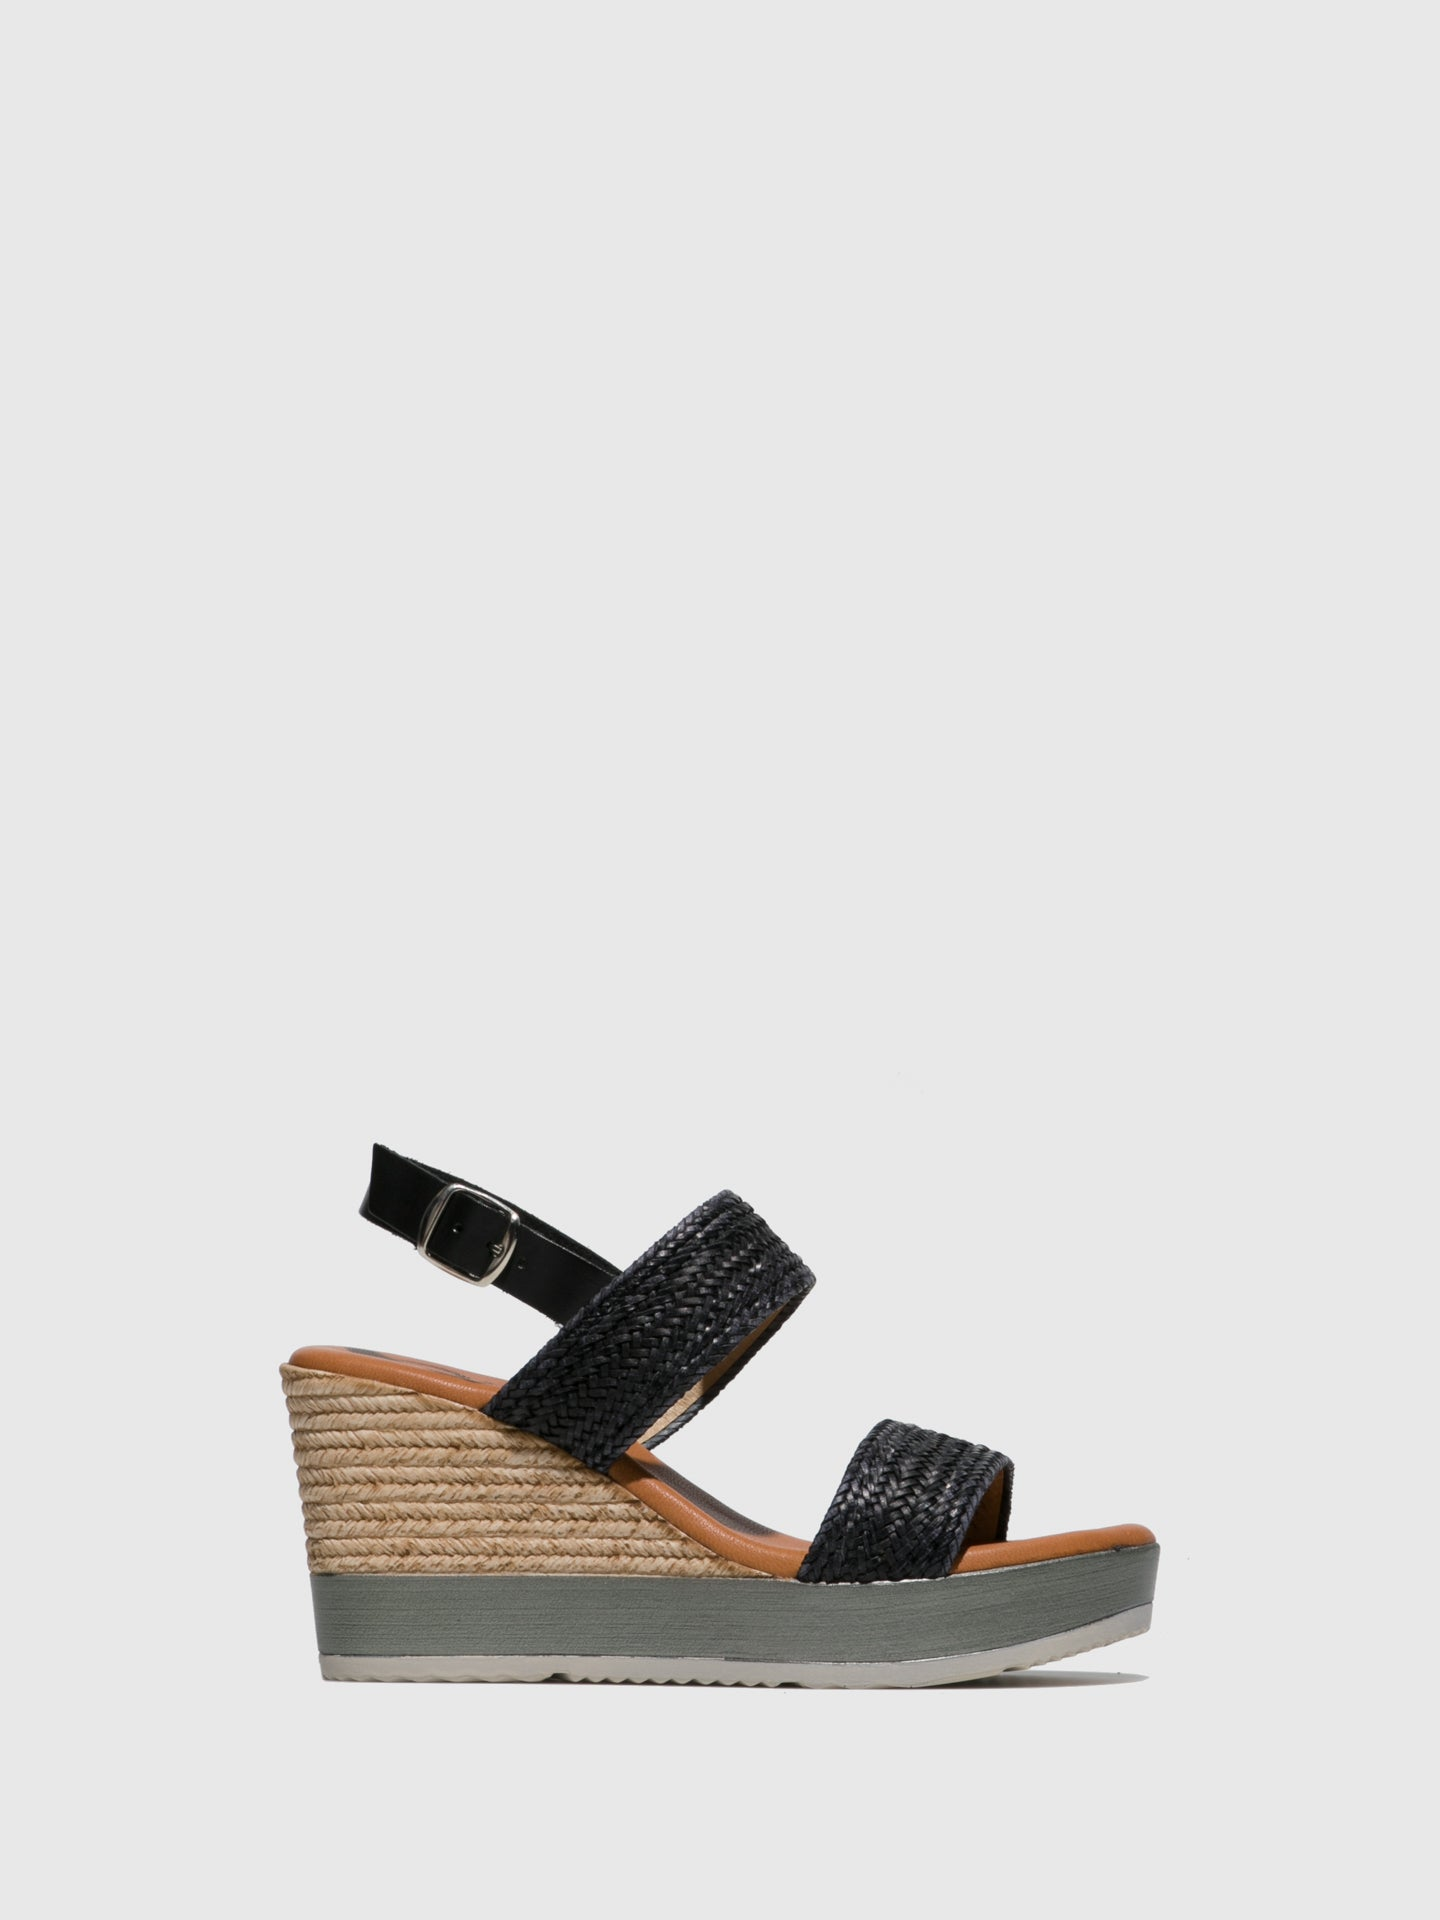 Sotoalto Black Wedge Sandals